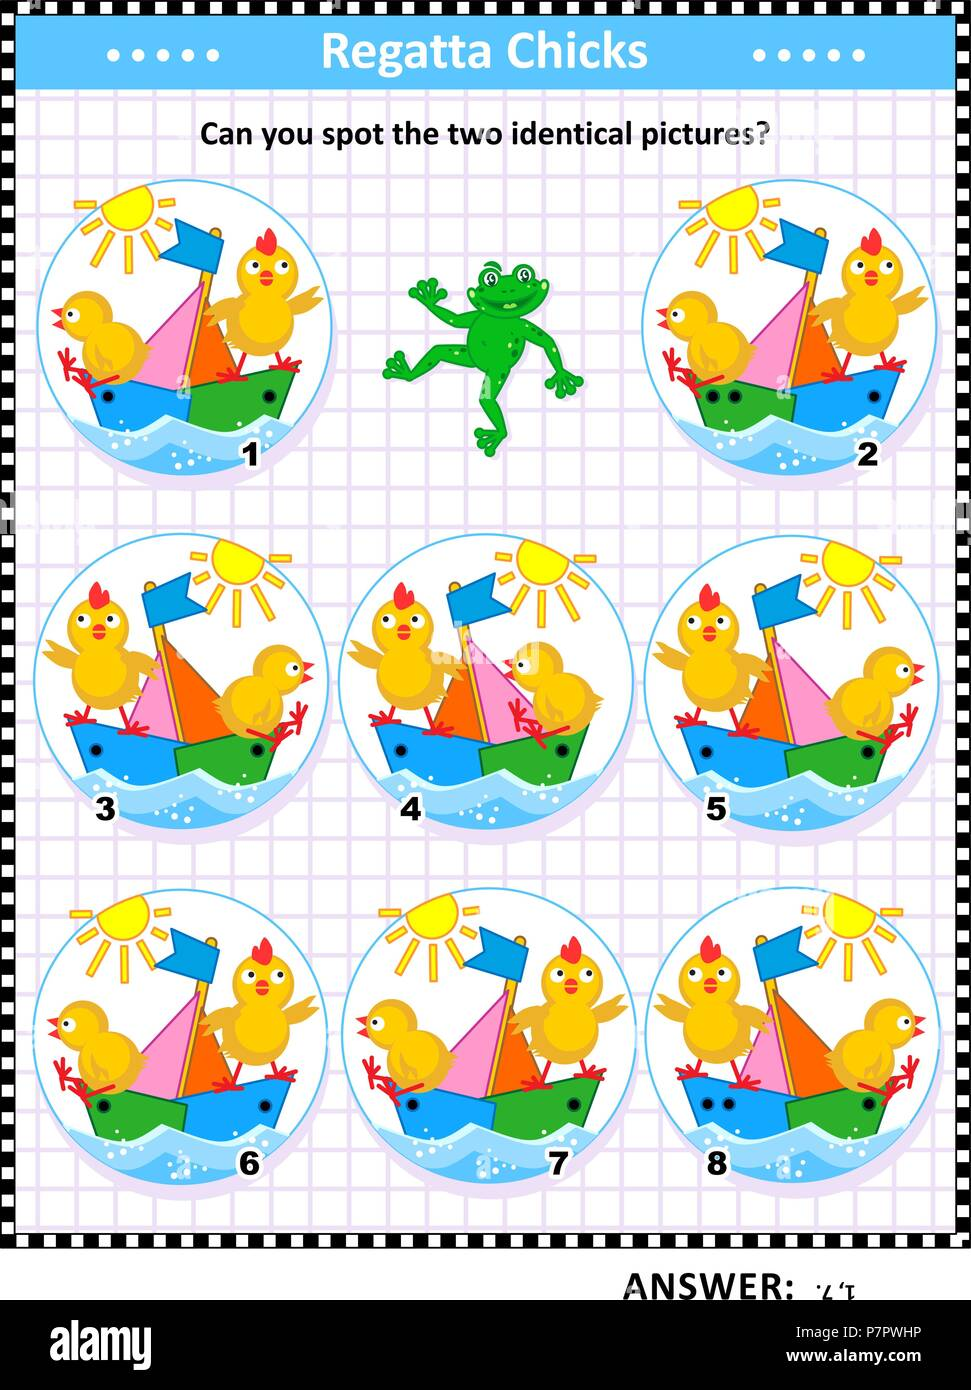 spring or summer themed visual puzzle with sailor chicks and